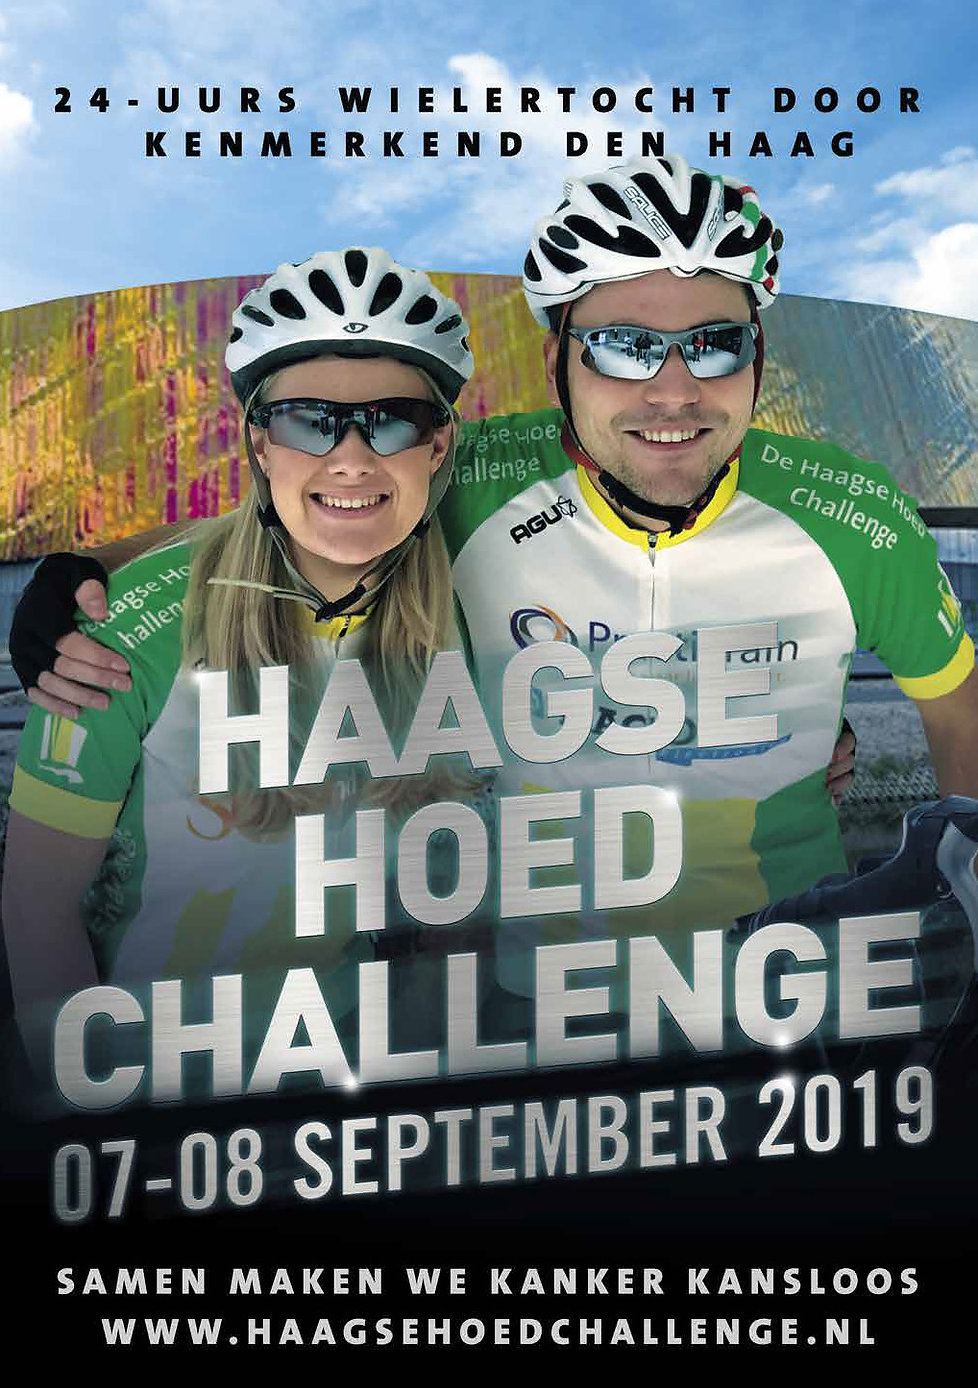 2019_390207_poster A3_LRESS_haagse hoed